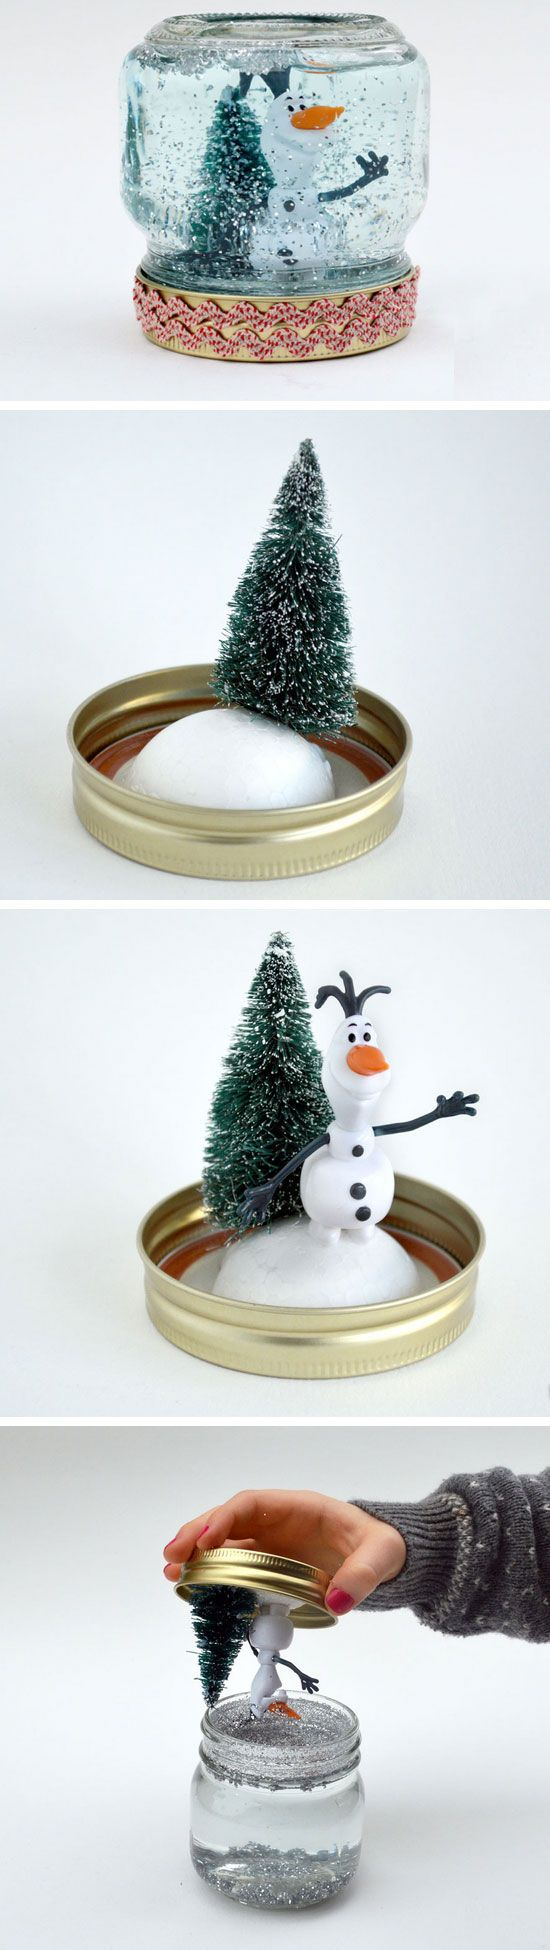 Pinterest Christmas Crafts.Jose Manuel A44450904 On Pinterest